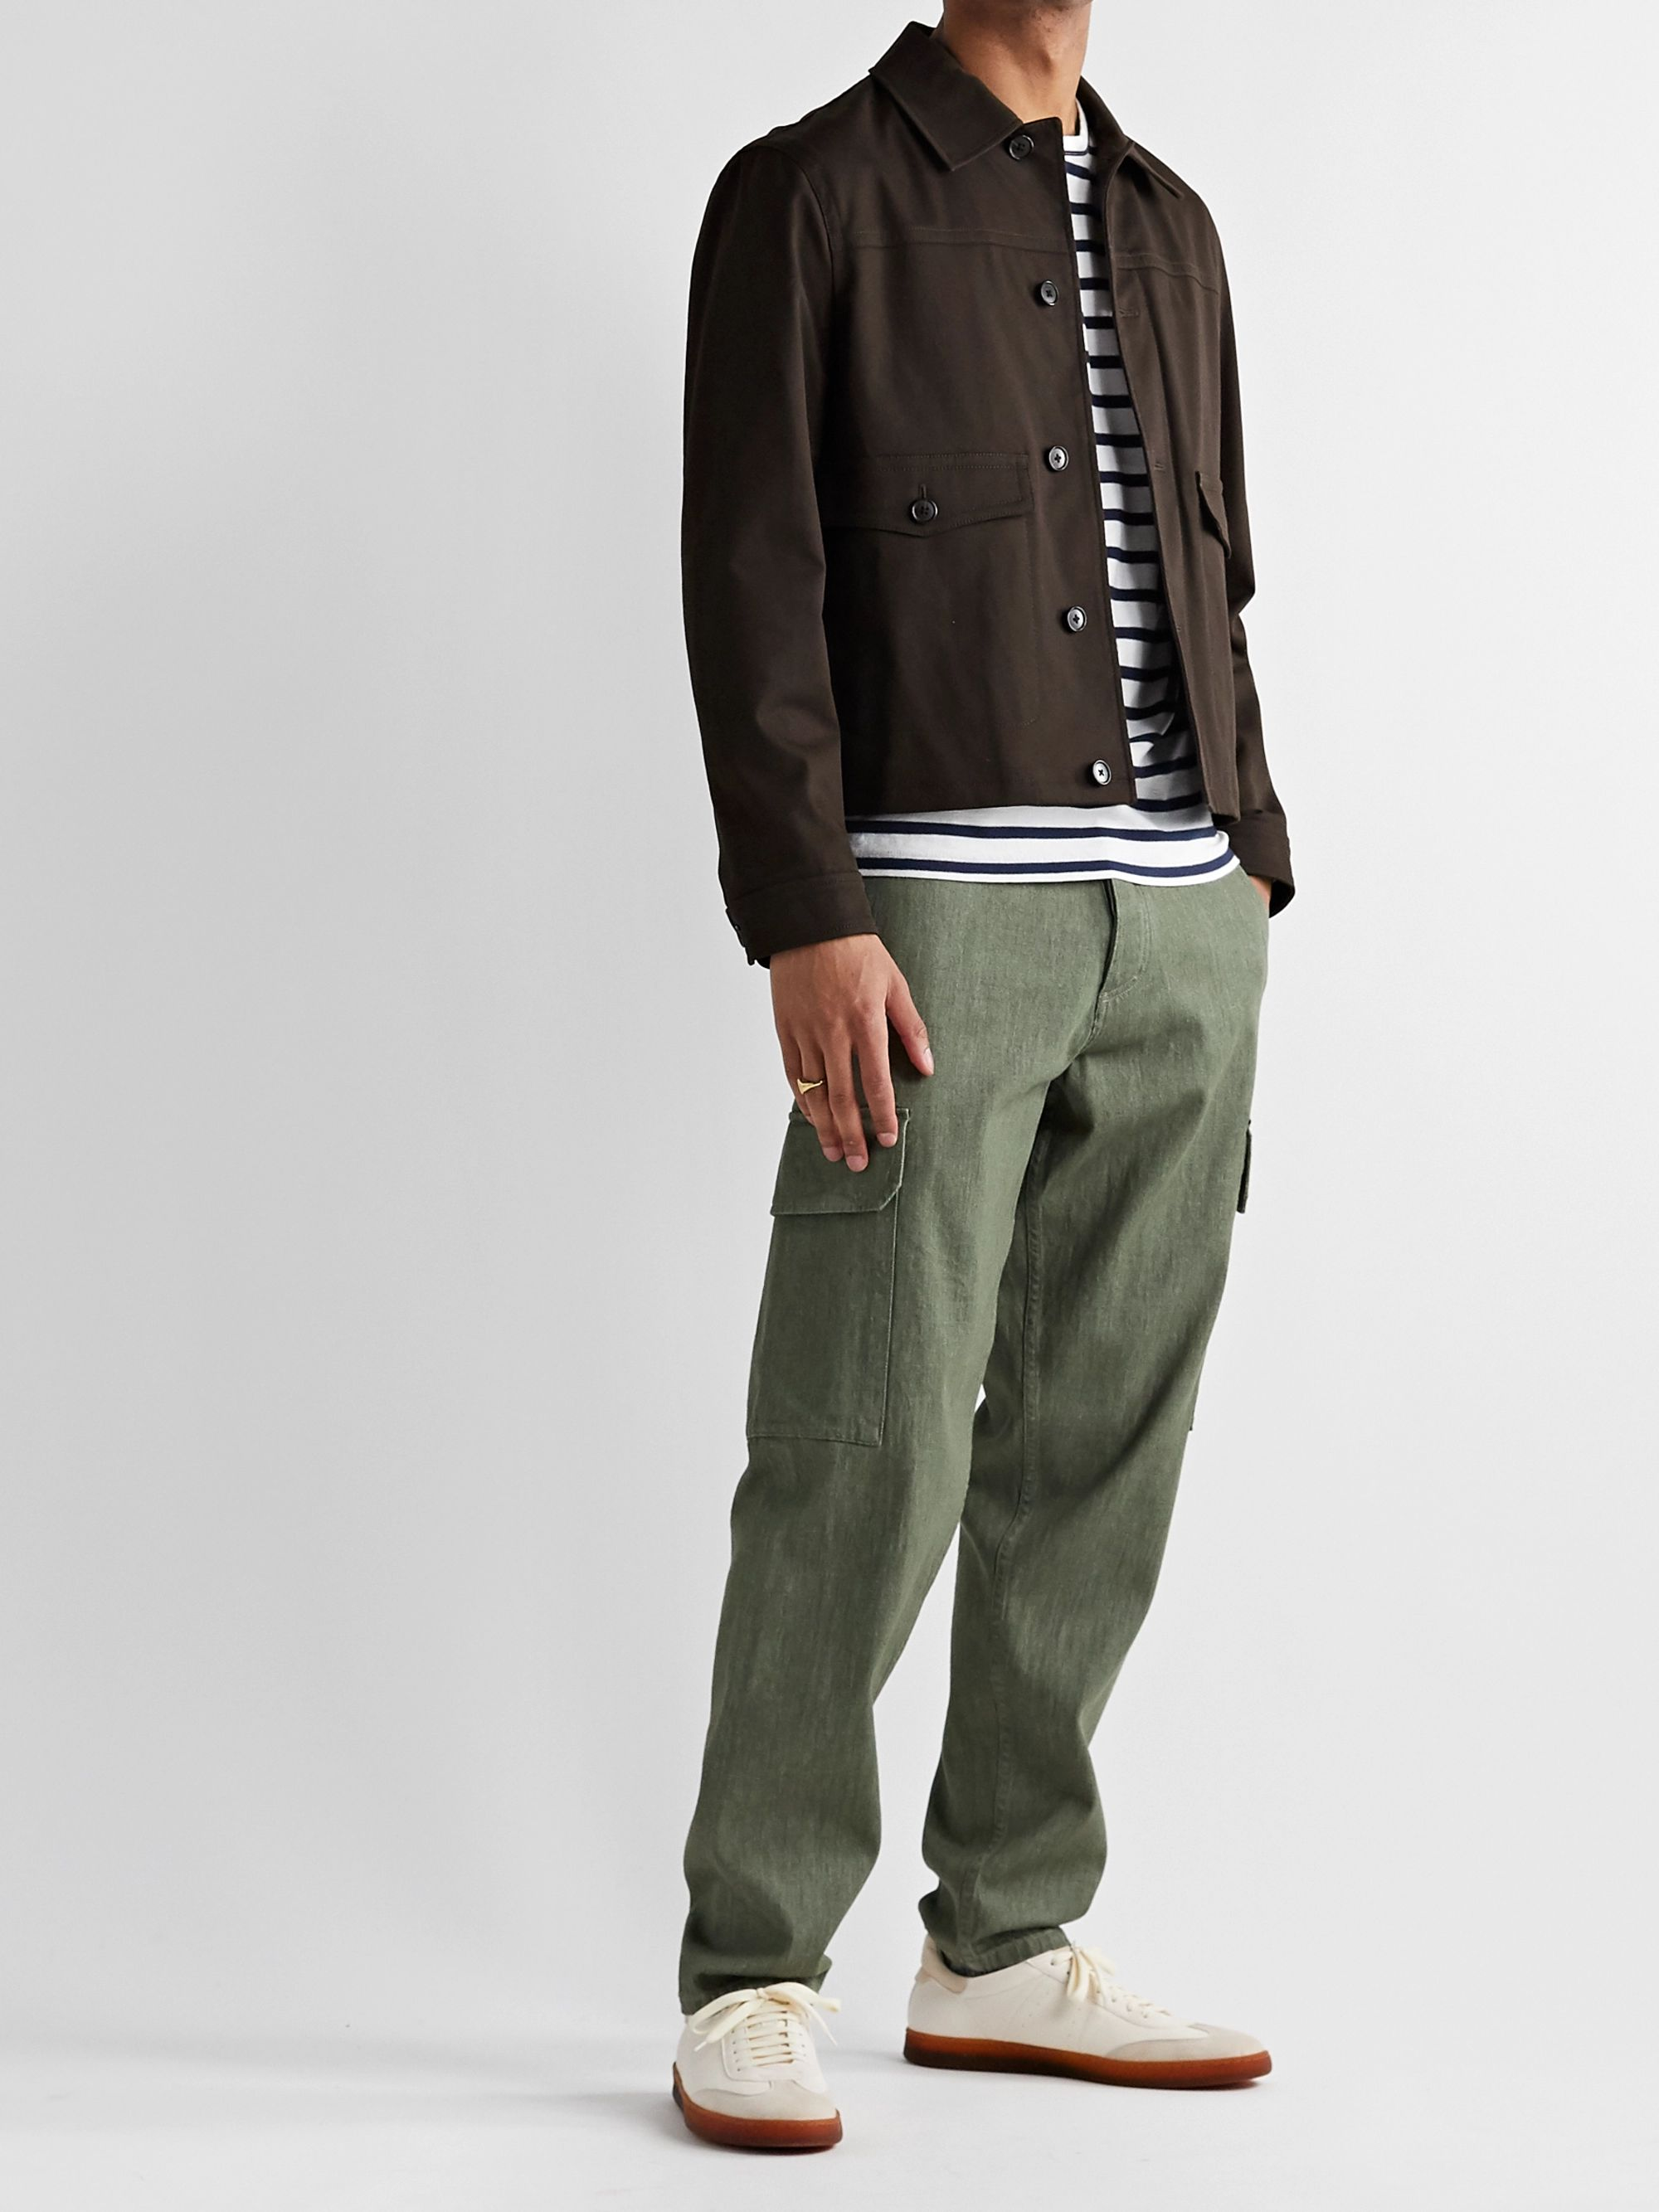 Club Monaco Cotton-Blend Twill Chore Jacket